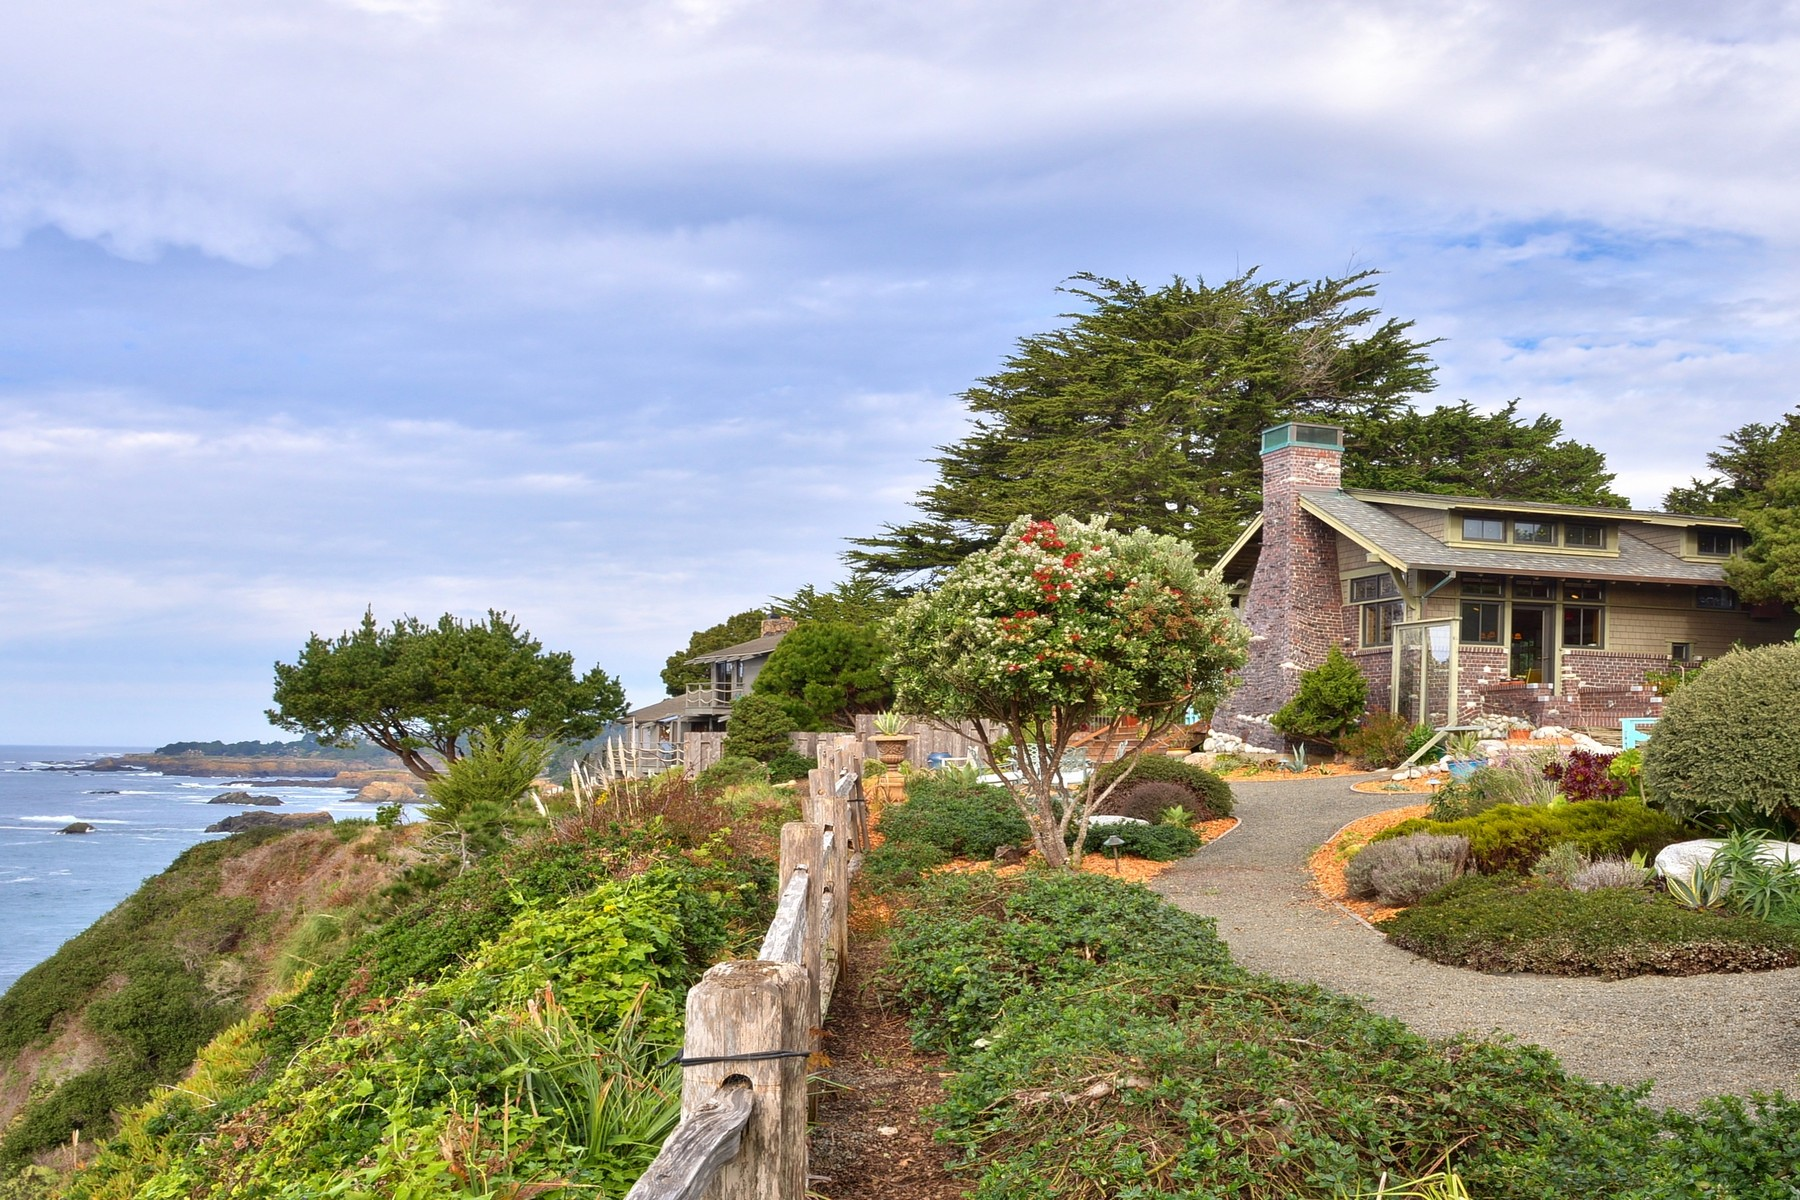 Single Family Home for Sale at Casa Pacifica 11050 Lansing Street Mendocino, California 95460 United States